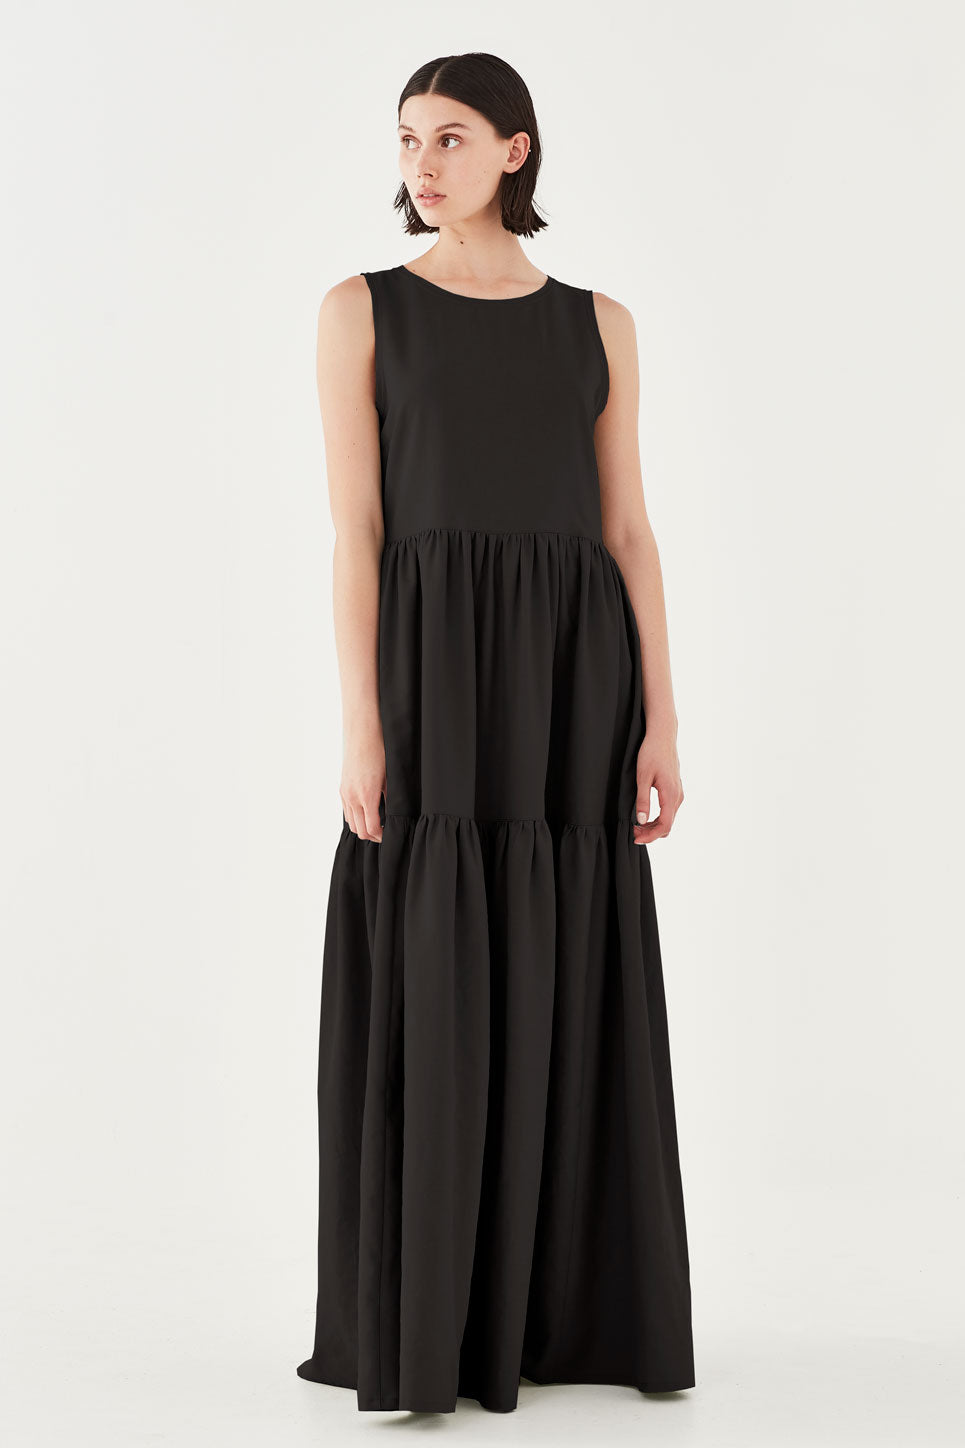 The Iris Dress in Black